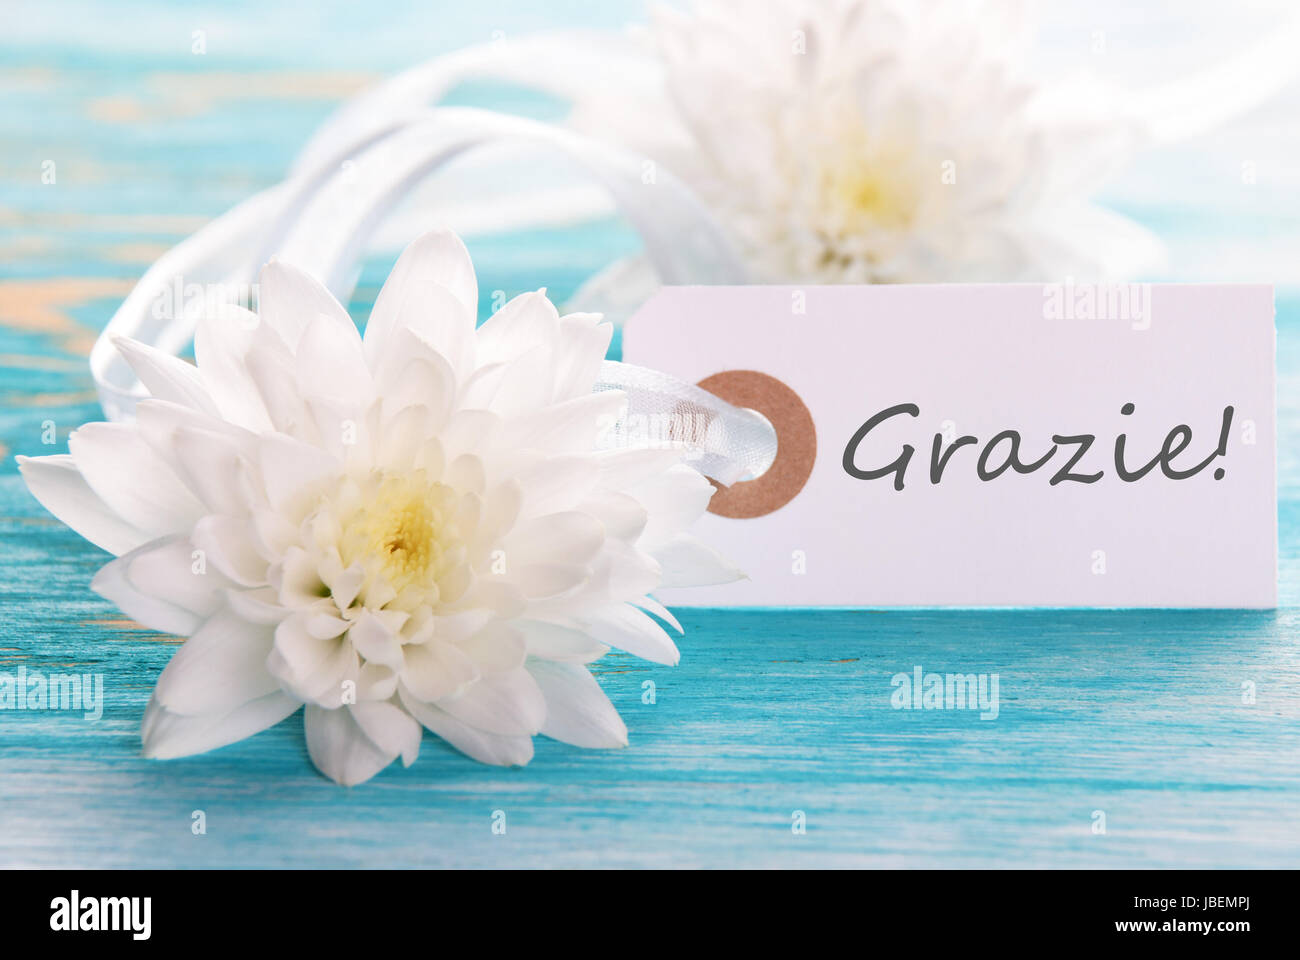 Label With The Italian Word Grazie Which Means Thanks On Turquiose